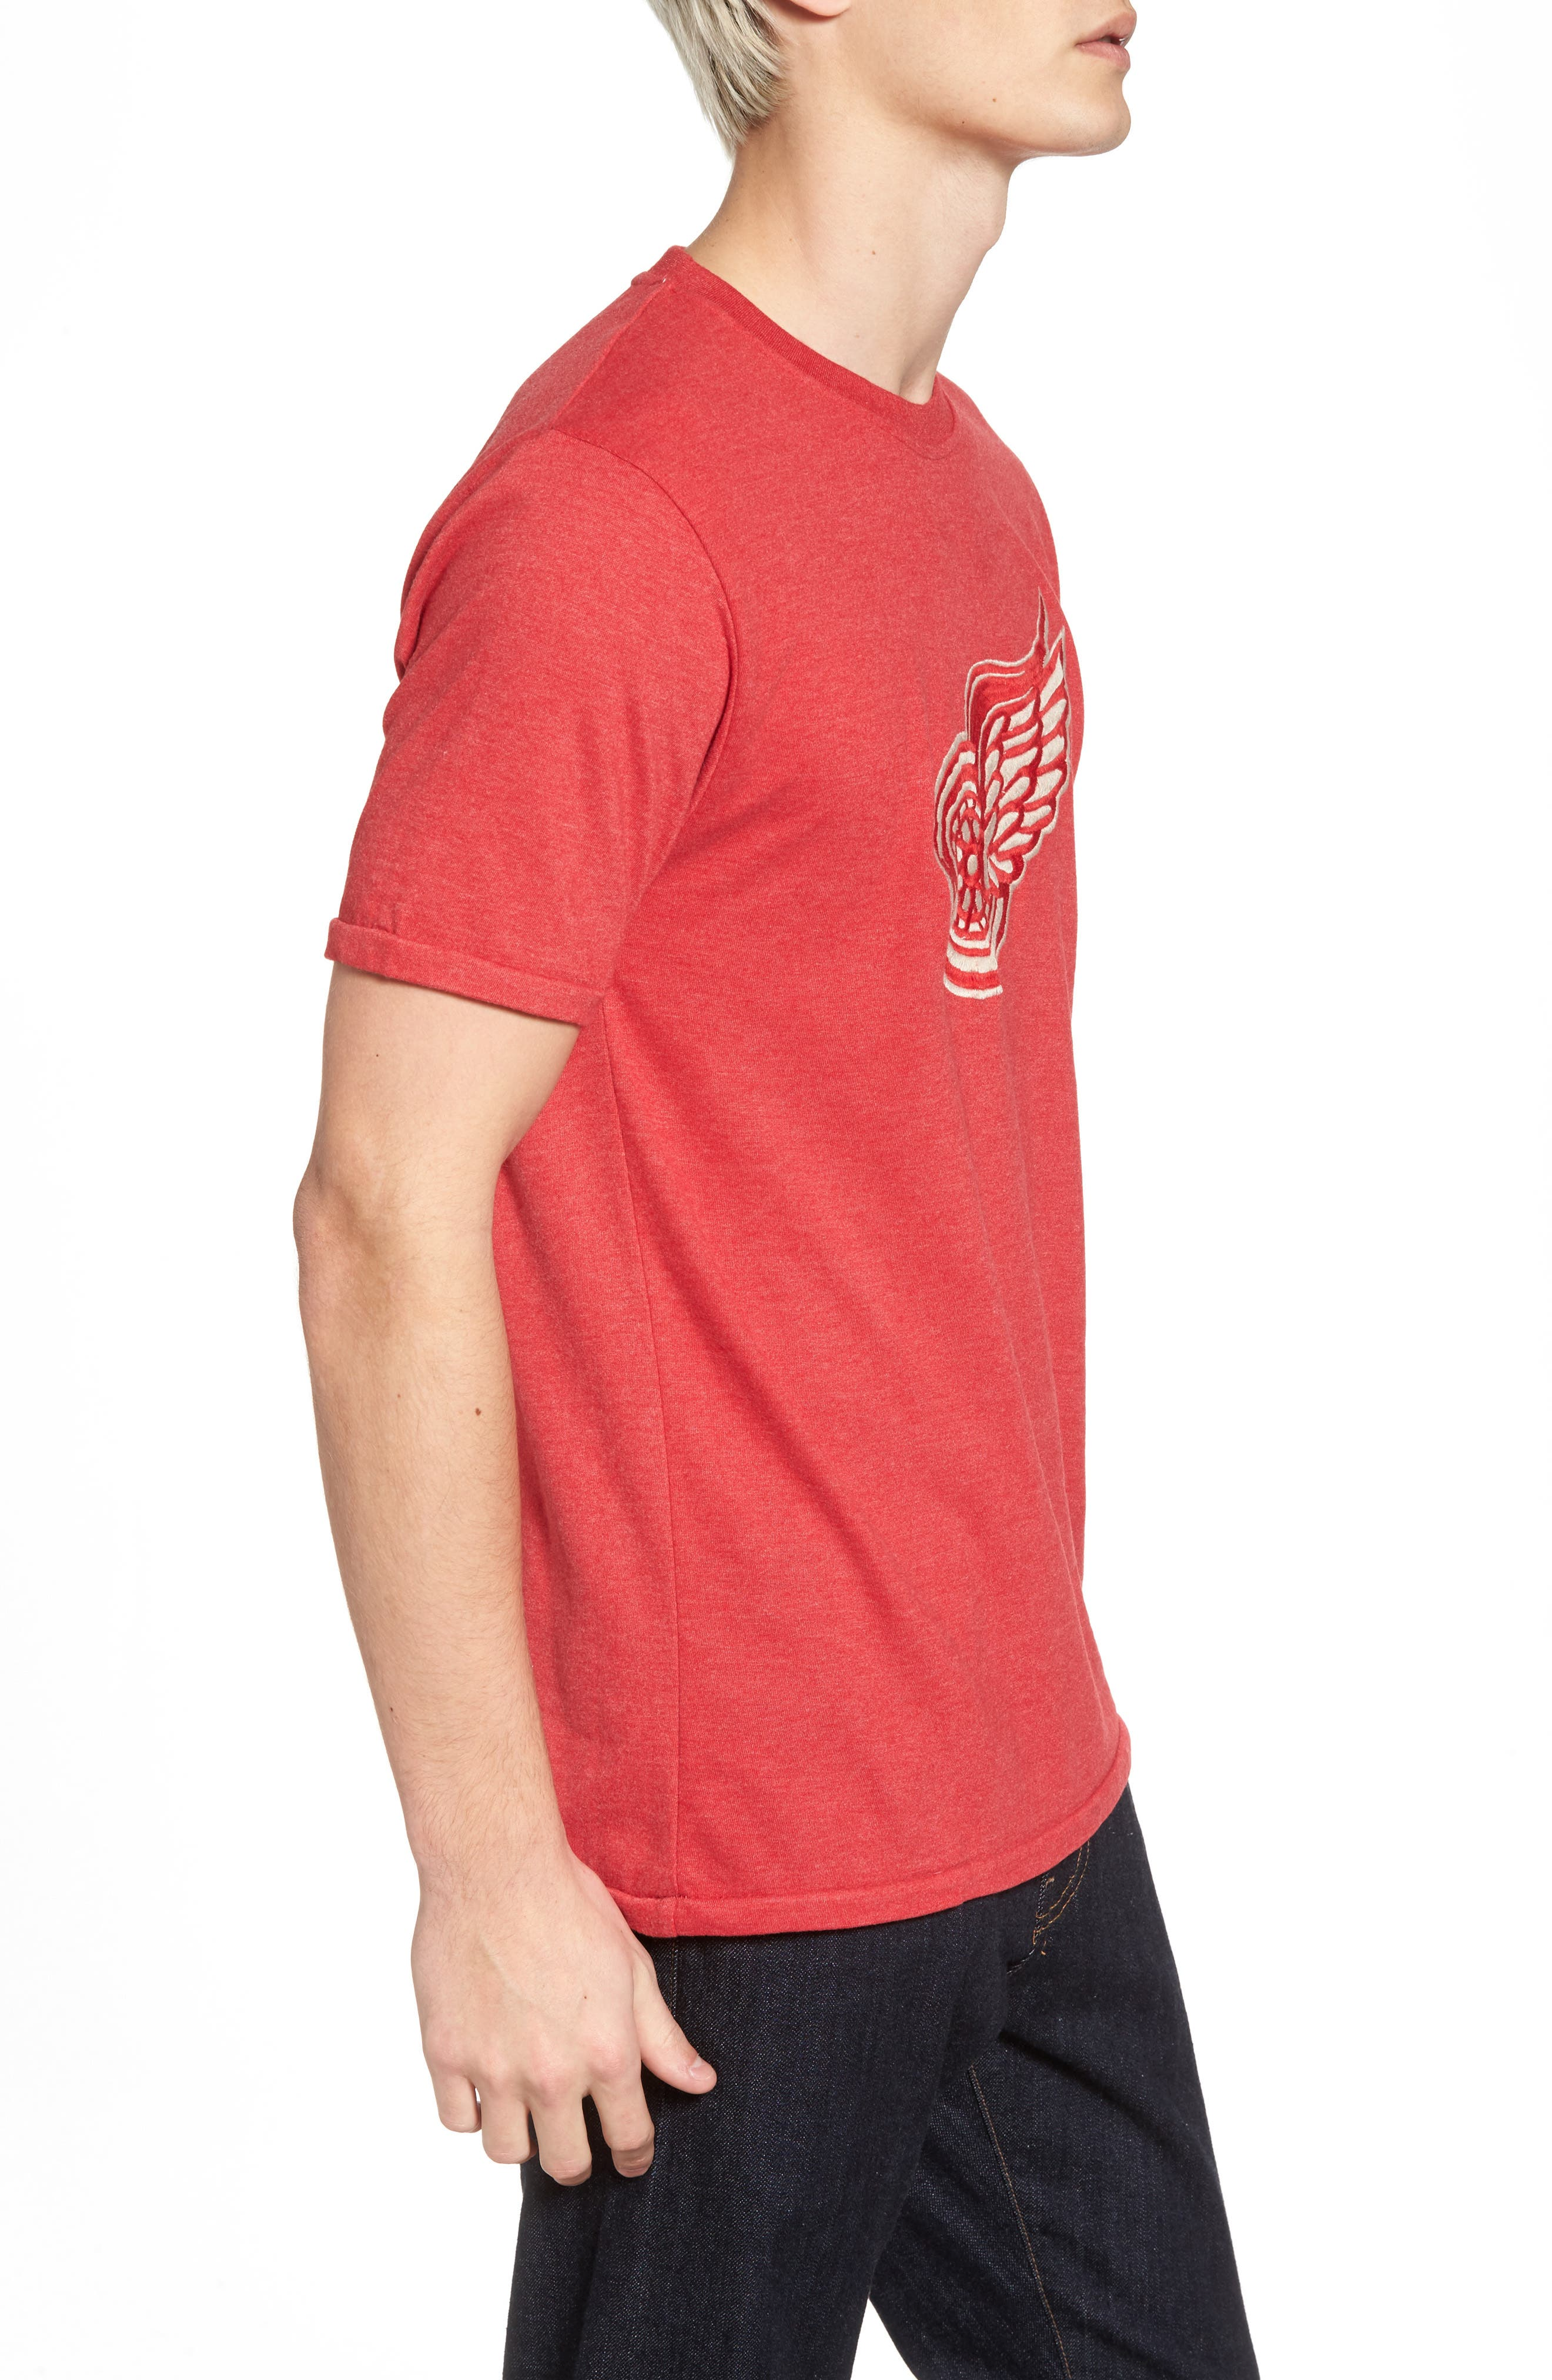 Hillwood Red Wings T-Shirt,                             Alternate thumbnail 3, color,                             Heather Red